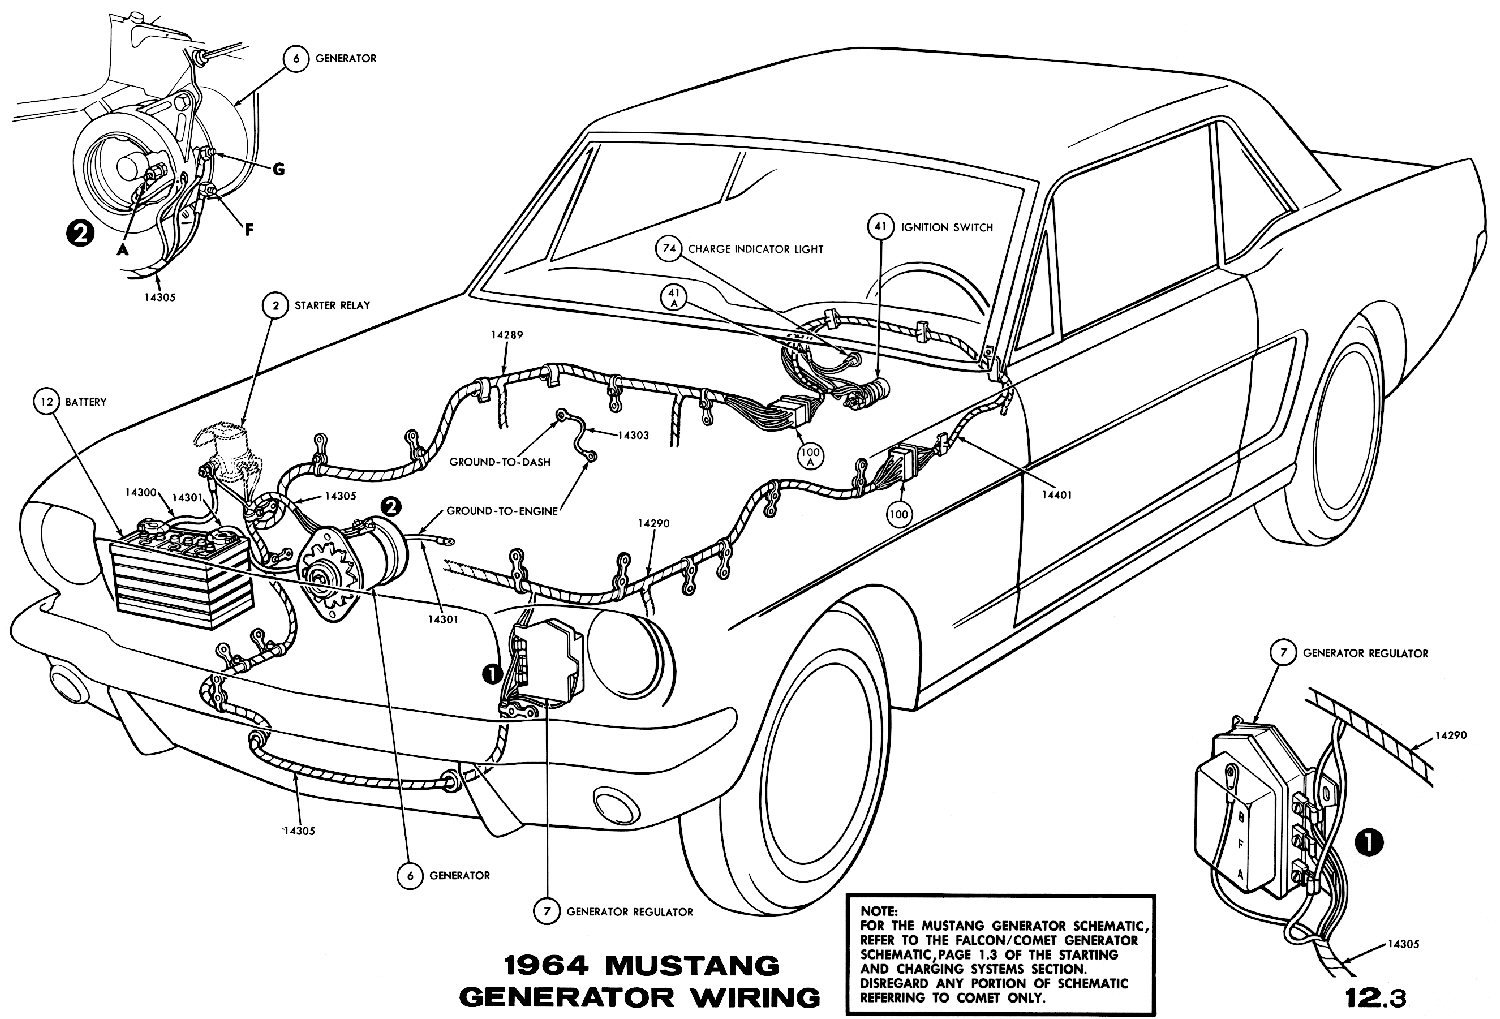 wiring diagram for 1965 ford mustang the wiring diagram 1964 mustang wiring diagrams average joe restoration wiring diagram